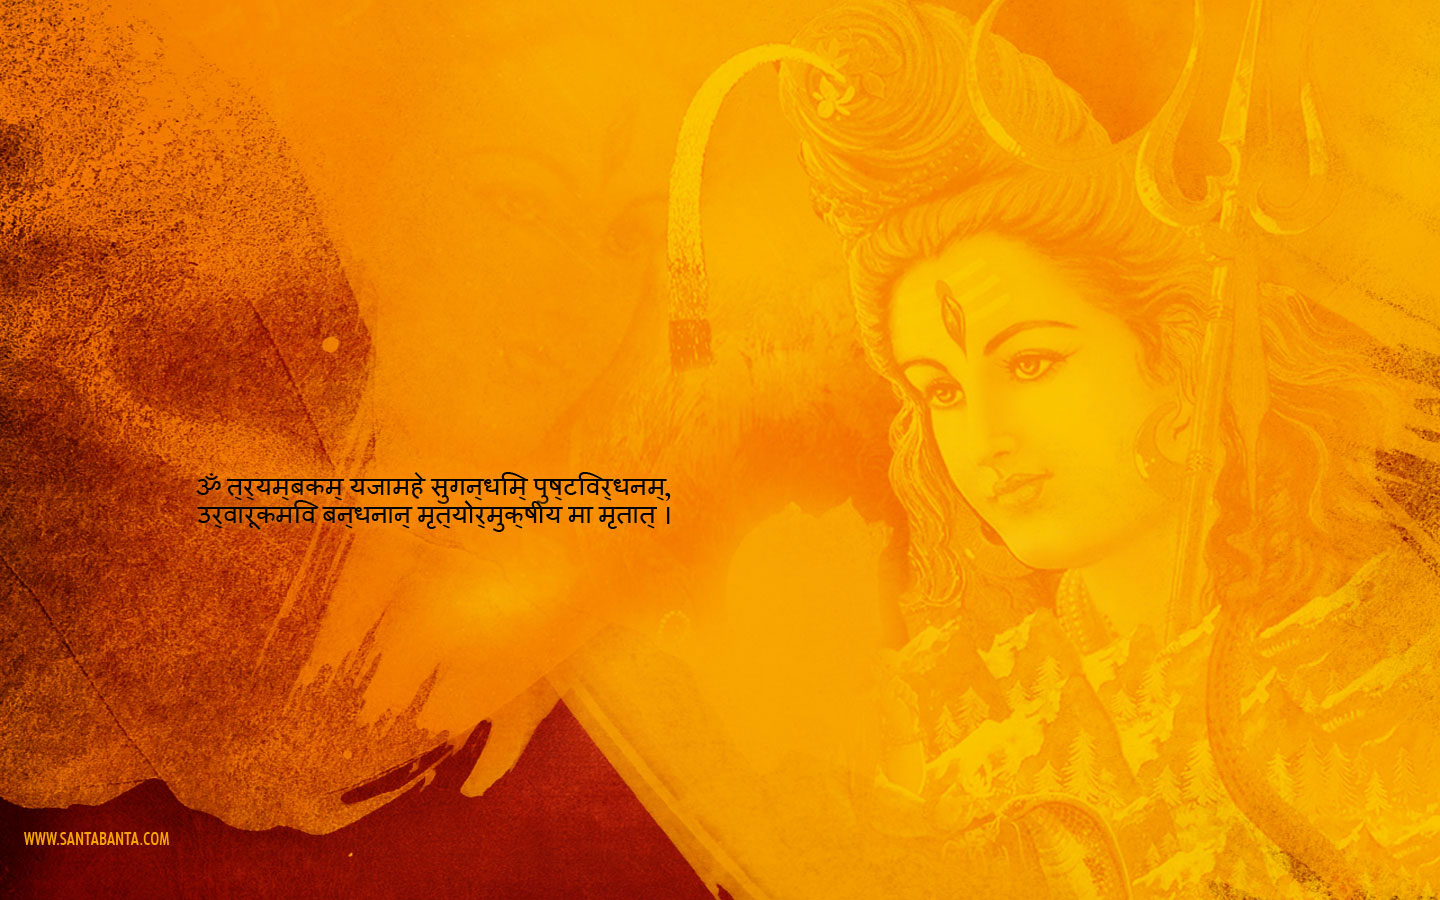 Wallpapers Hq Lord Mantra Shiva Download